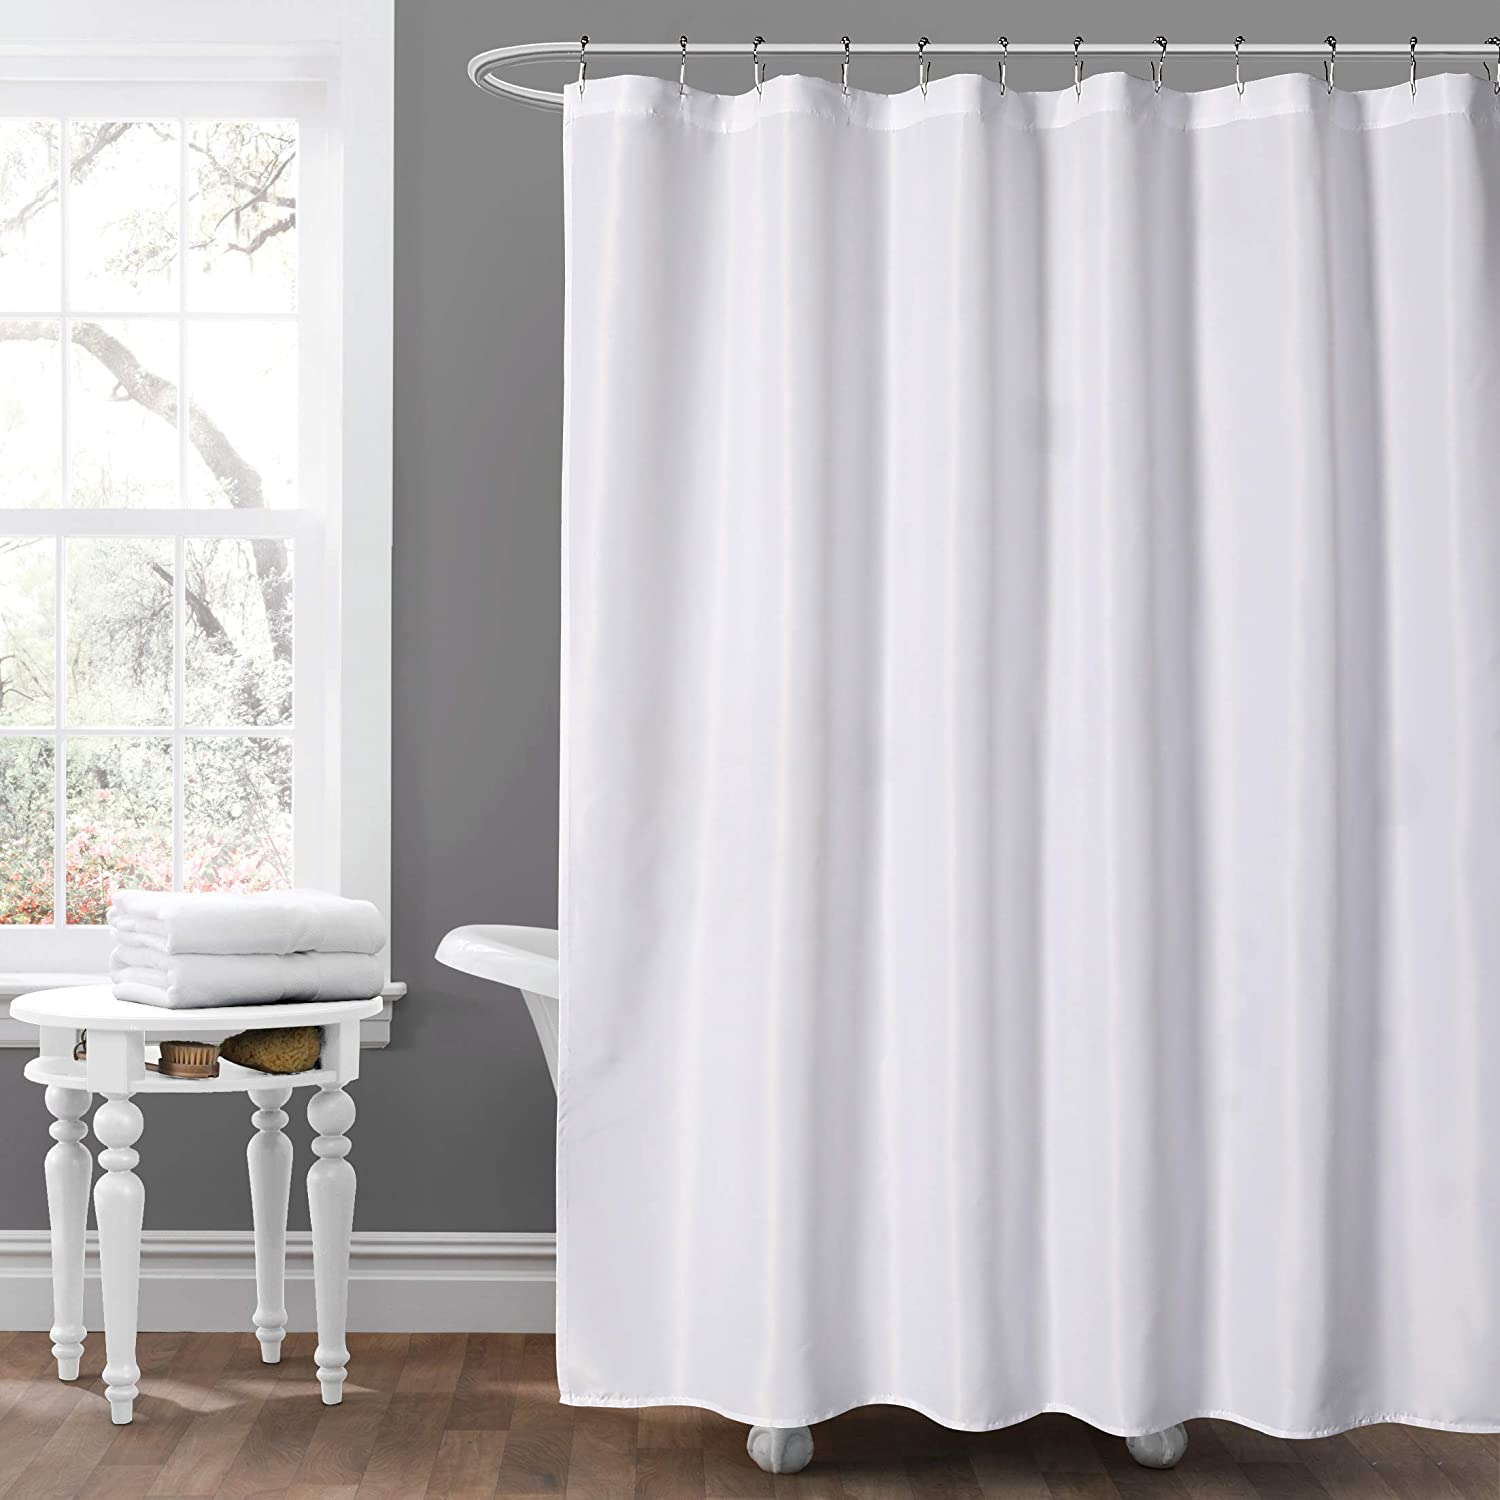 """MYSKY HOME White Fabric Shower Curtain,Machine Washable Fabric Shower Curtain with Hotel Quality for Bath Tub,Portable White Curtain Liner for Outdoor Use Available,72""""x72"""""""